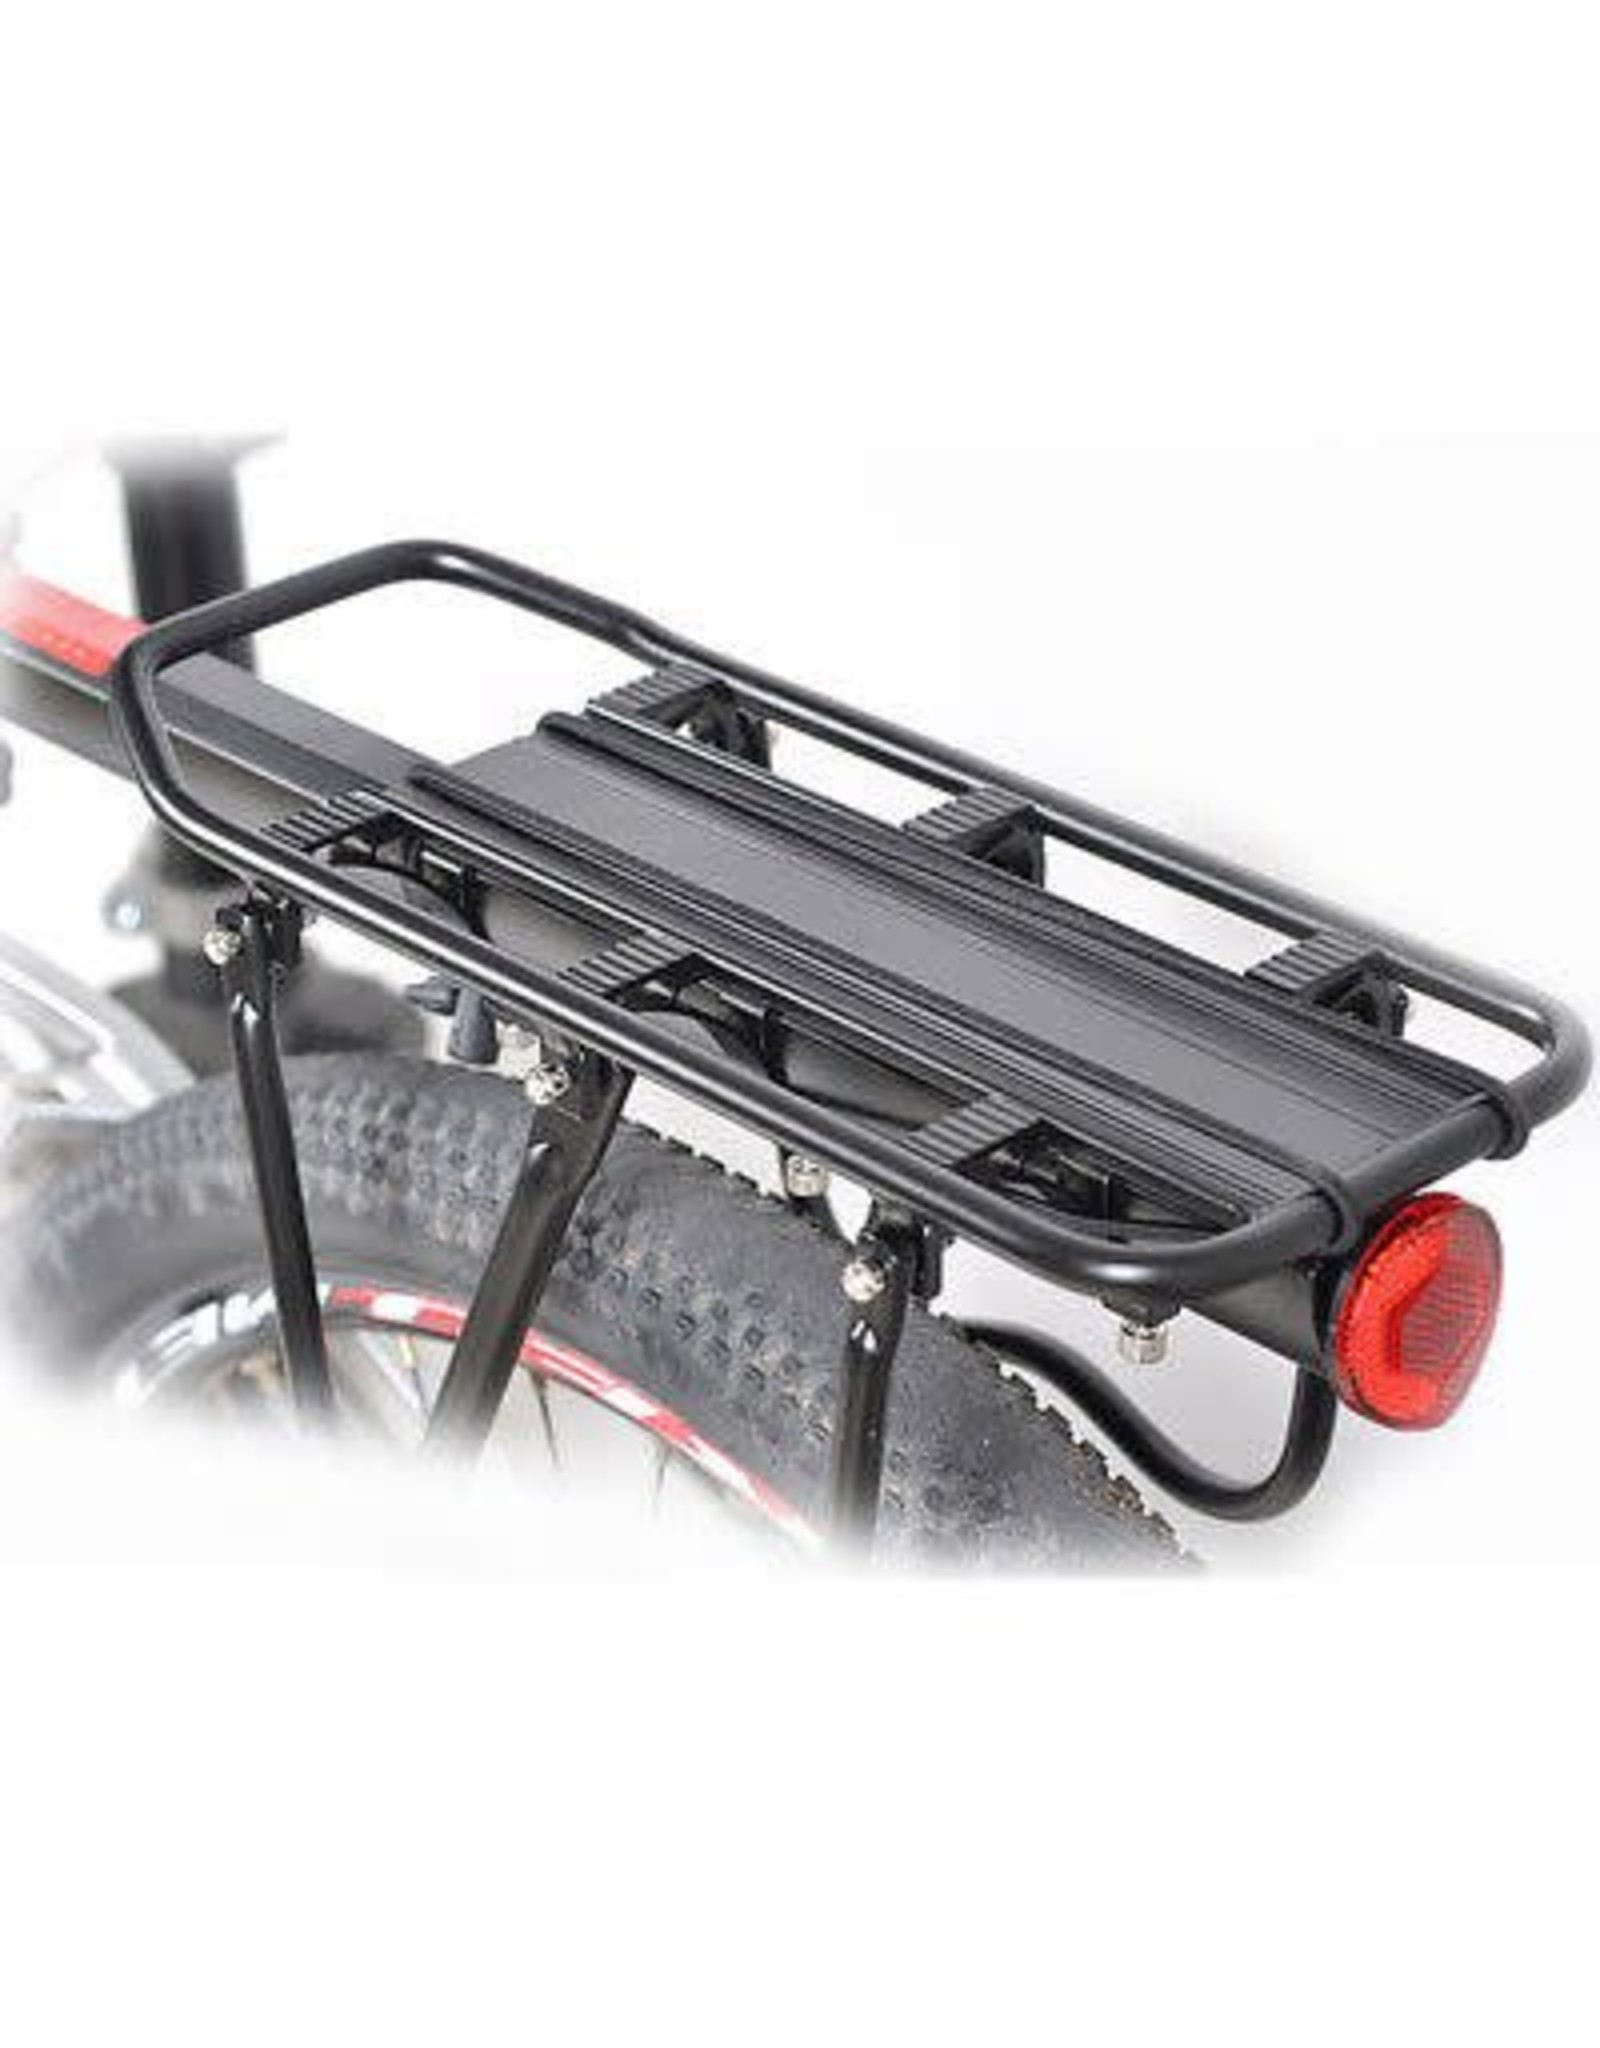 EVO EVO E-Cargo Post Seatpost rack with side support